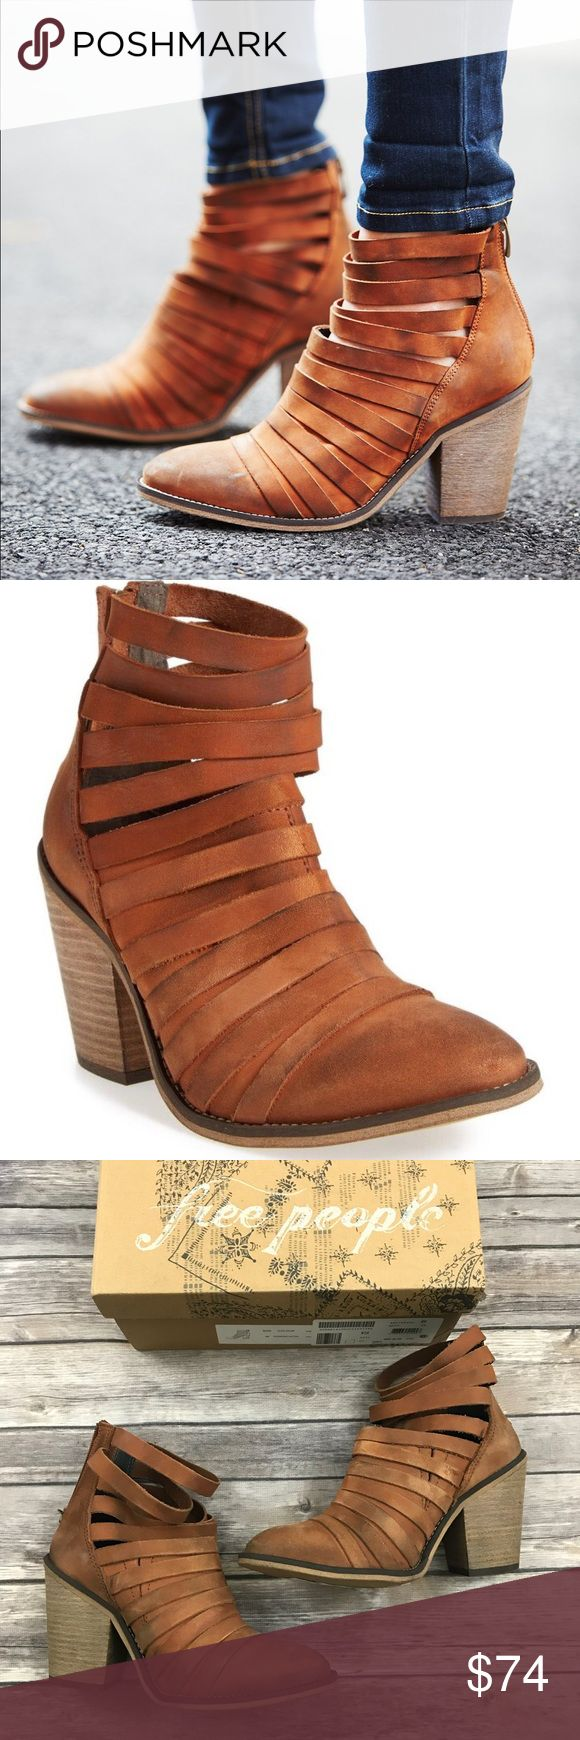 New Free People Hybrid Strappy Leather Booties Free People Hybrid Strappy Leather Booties in Terracotta  •New in box •Size 36 (6) •Retails for $198  Check out my other listings- Nike, adidas, Michael Kors, Hunter Boots, Kate Spade, Miss Me, Rock Revival, Coach, Wildfox, Victoria's Secret, PINK, True Religion, Ugg Australia, Free People and more! Free People Shoes Ankle Boots & Booties